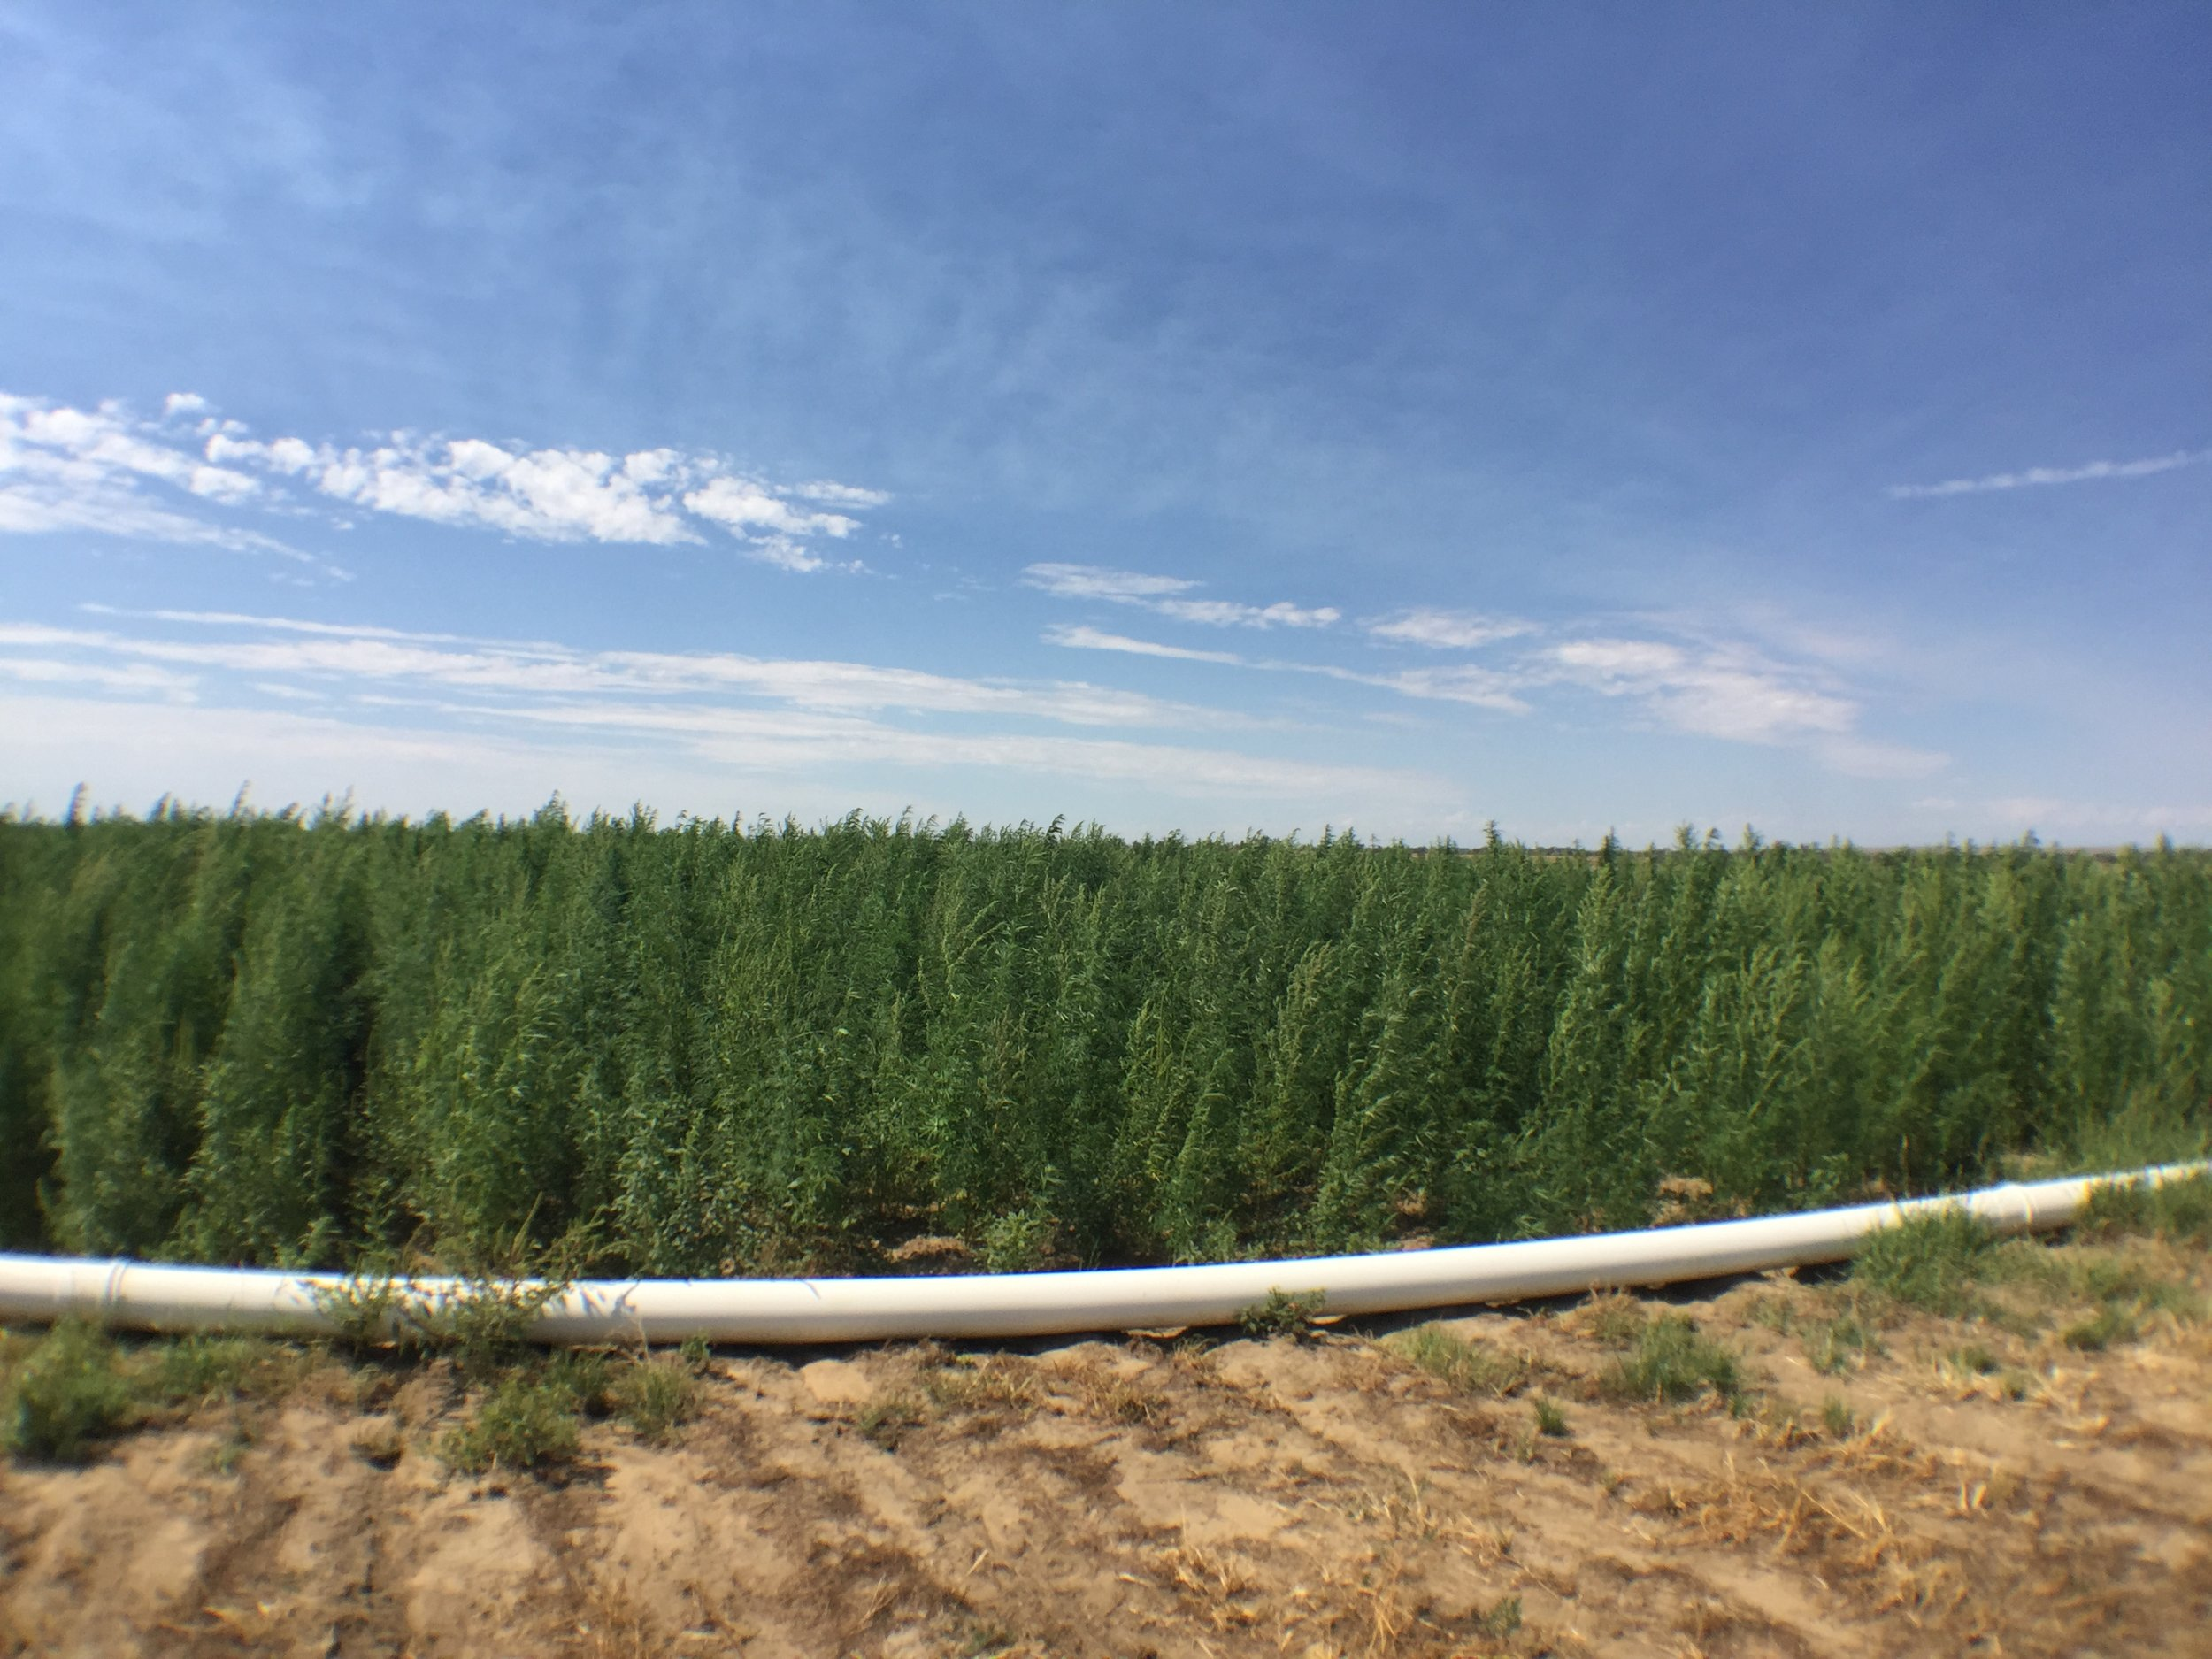 Side View of 300 Acre Hemp Field in CO with Flood Irrigation (Tubing shown at bottom)